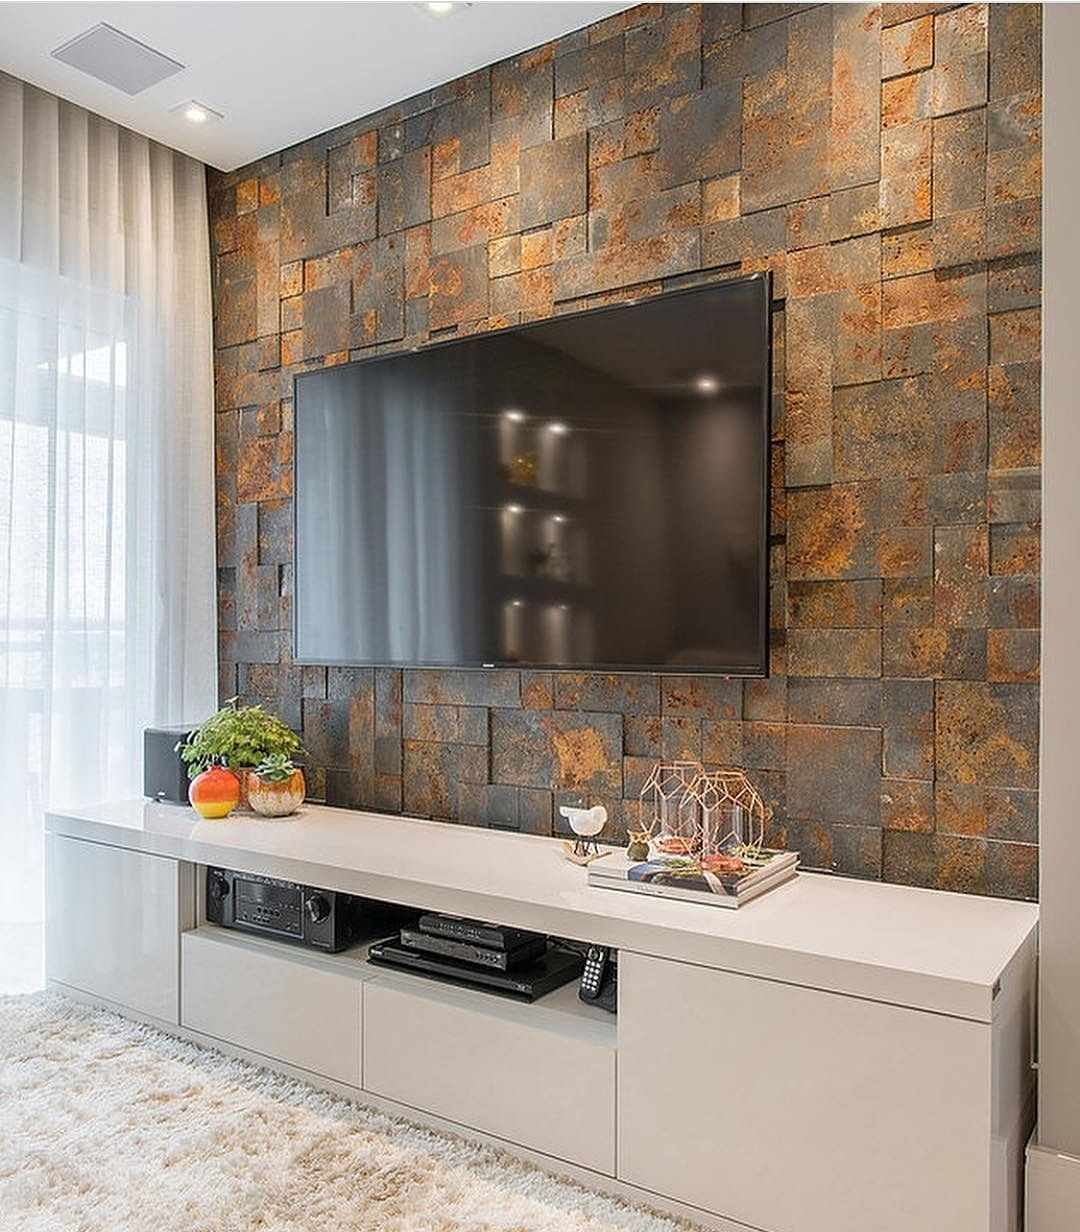 Wall Tiles For Tv In 2020 Tv Room Design Apartment Decorating Livingroom Living Room Decor Apartment